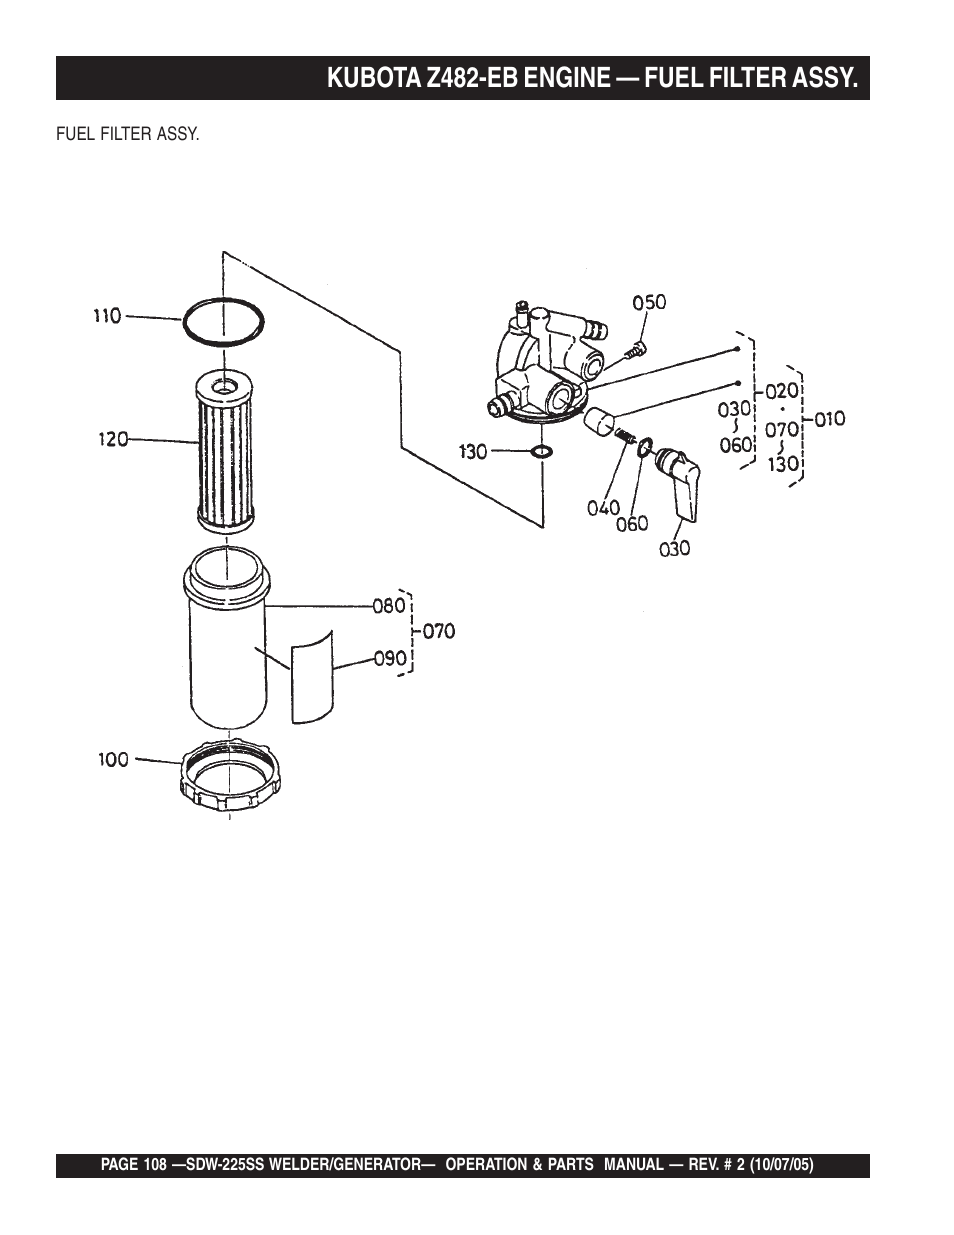 hight resolution of kubota z482 eb engine fuel filter assy multiquip sdw225ss user manual page 108 146